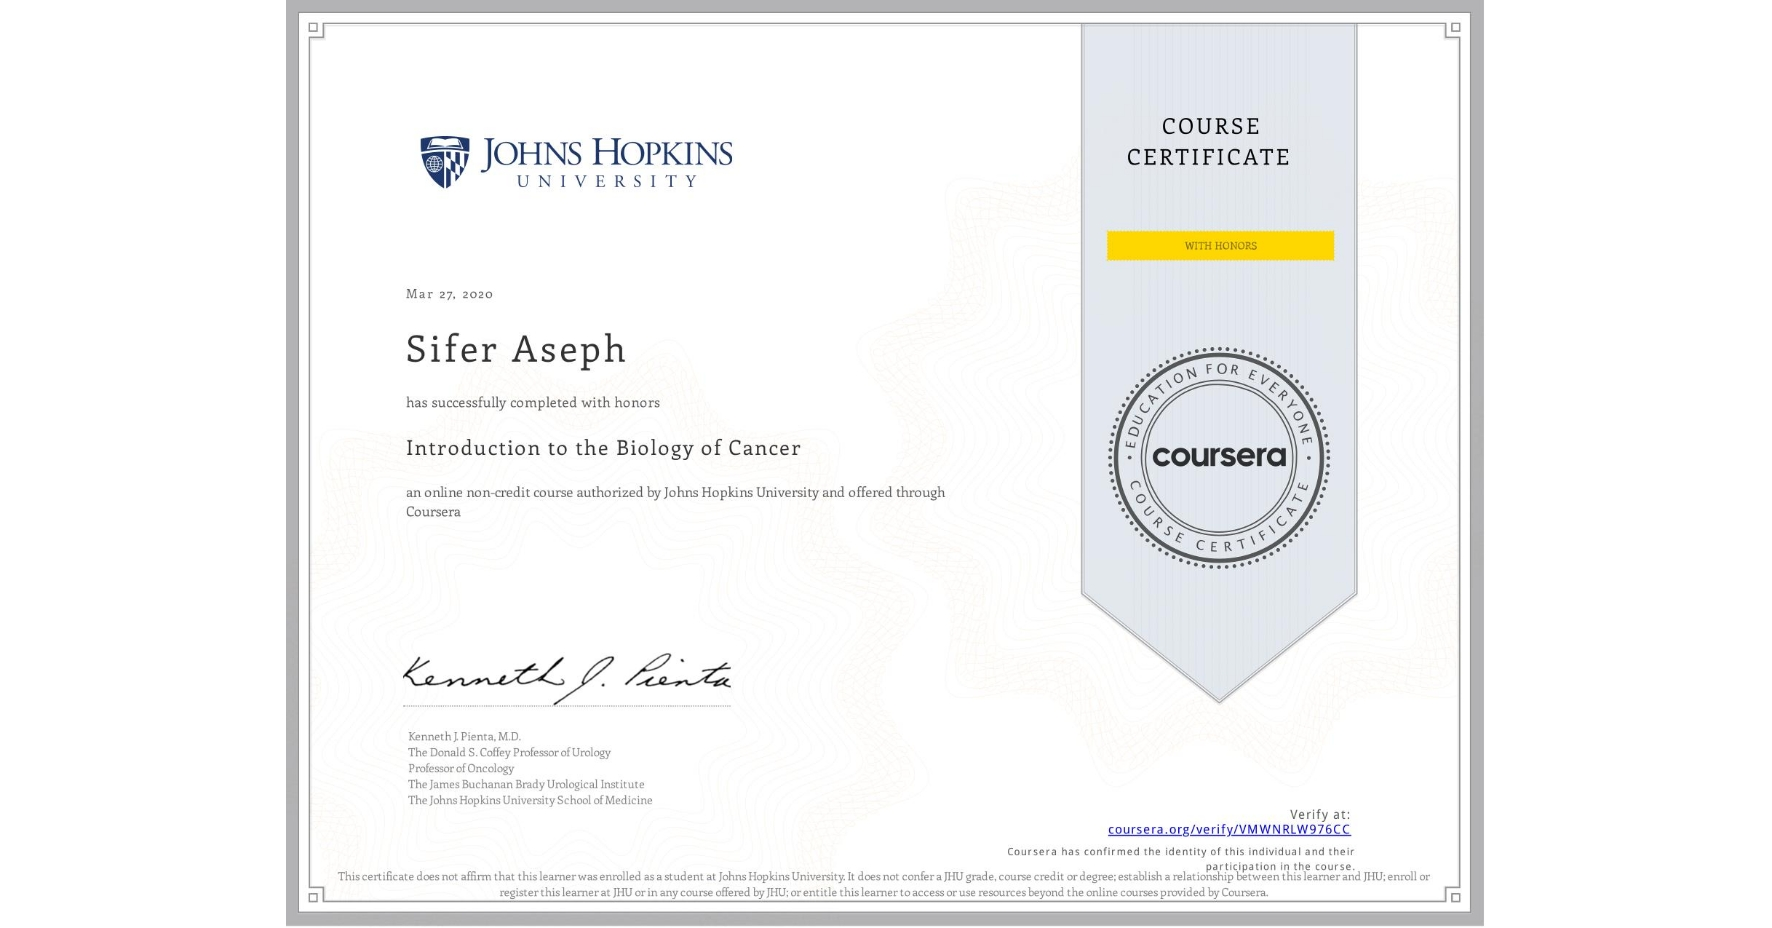 View certificate for Sifer Aseph, Introduction to the Biology of Cancer, an online non-credit course authorized by Johns Hopkins University and offered through Coursera